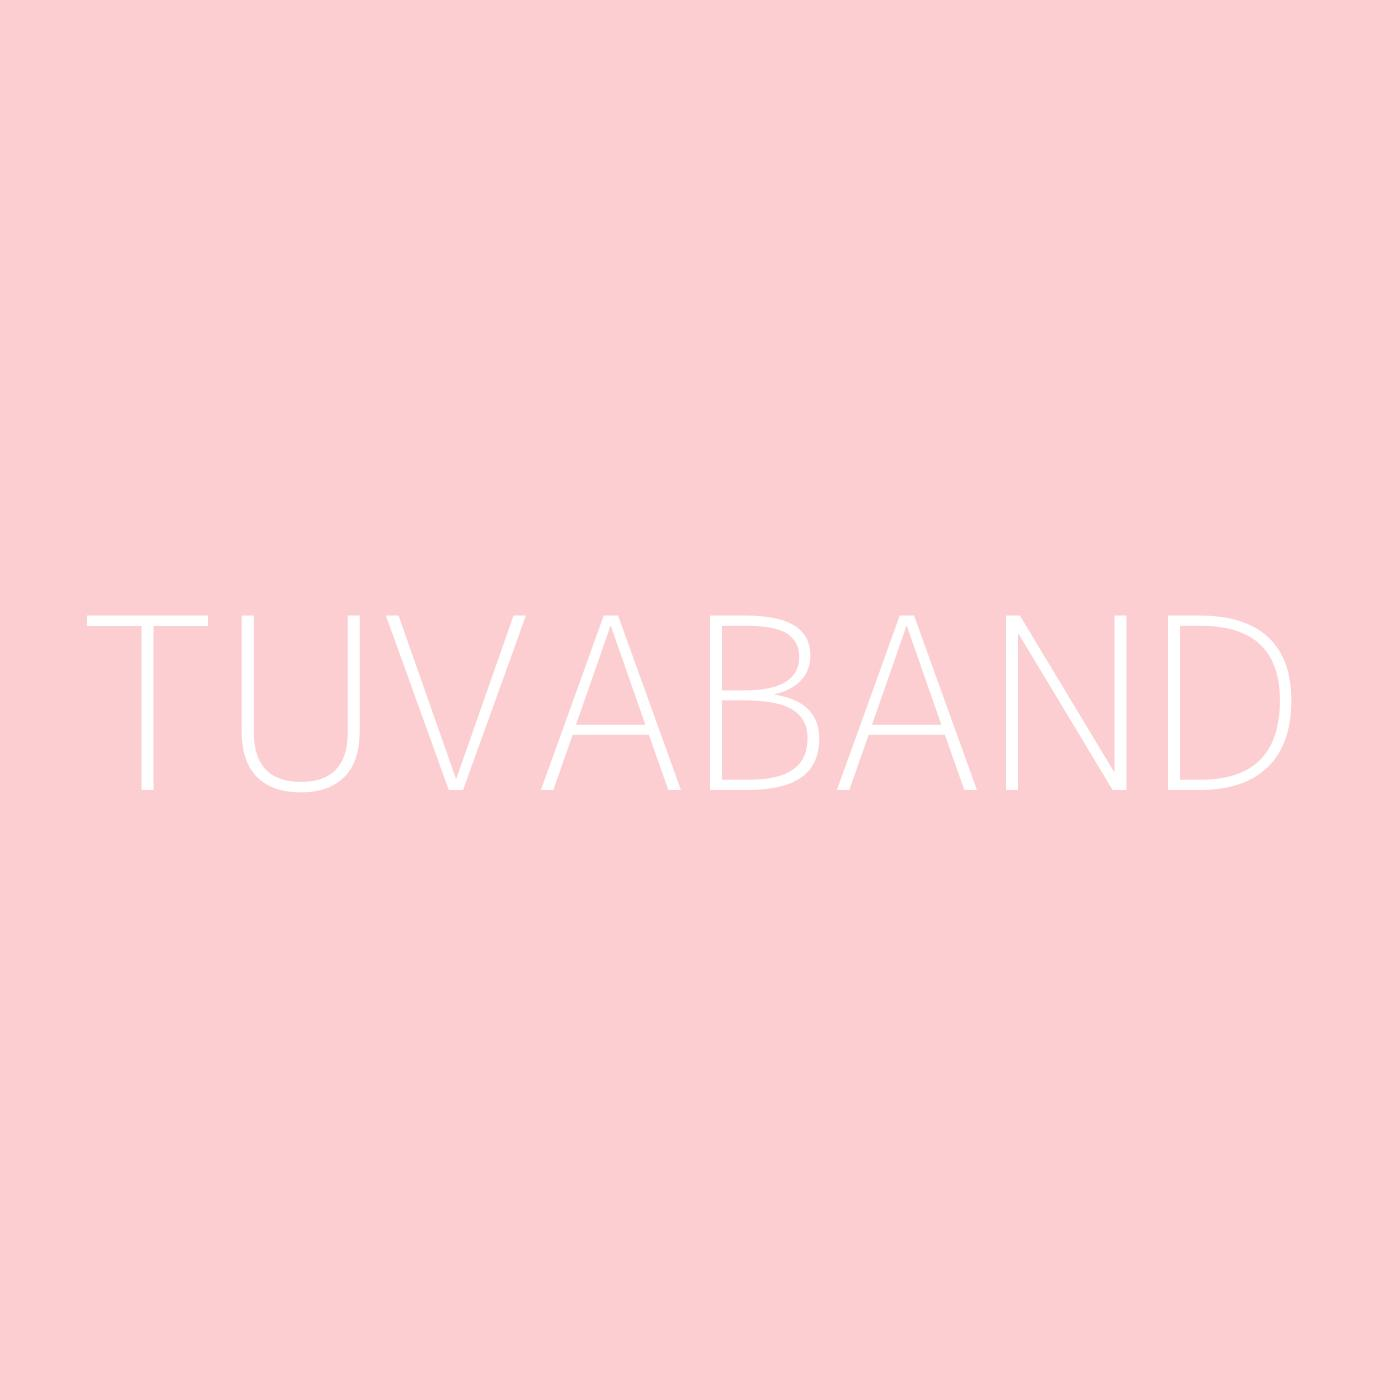 Tuvaband Playlist Artwork